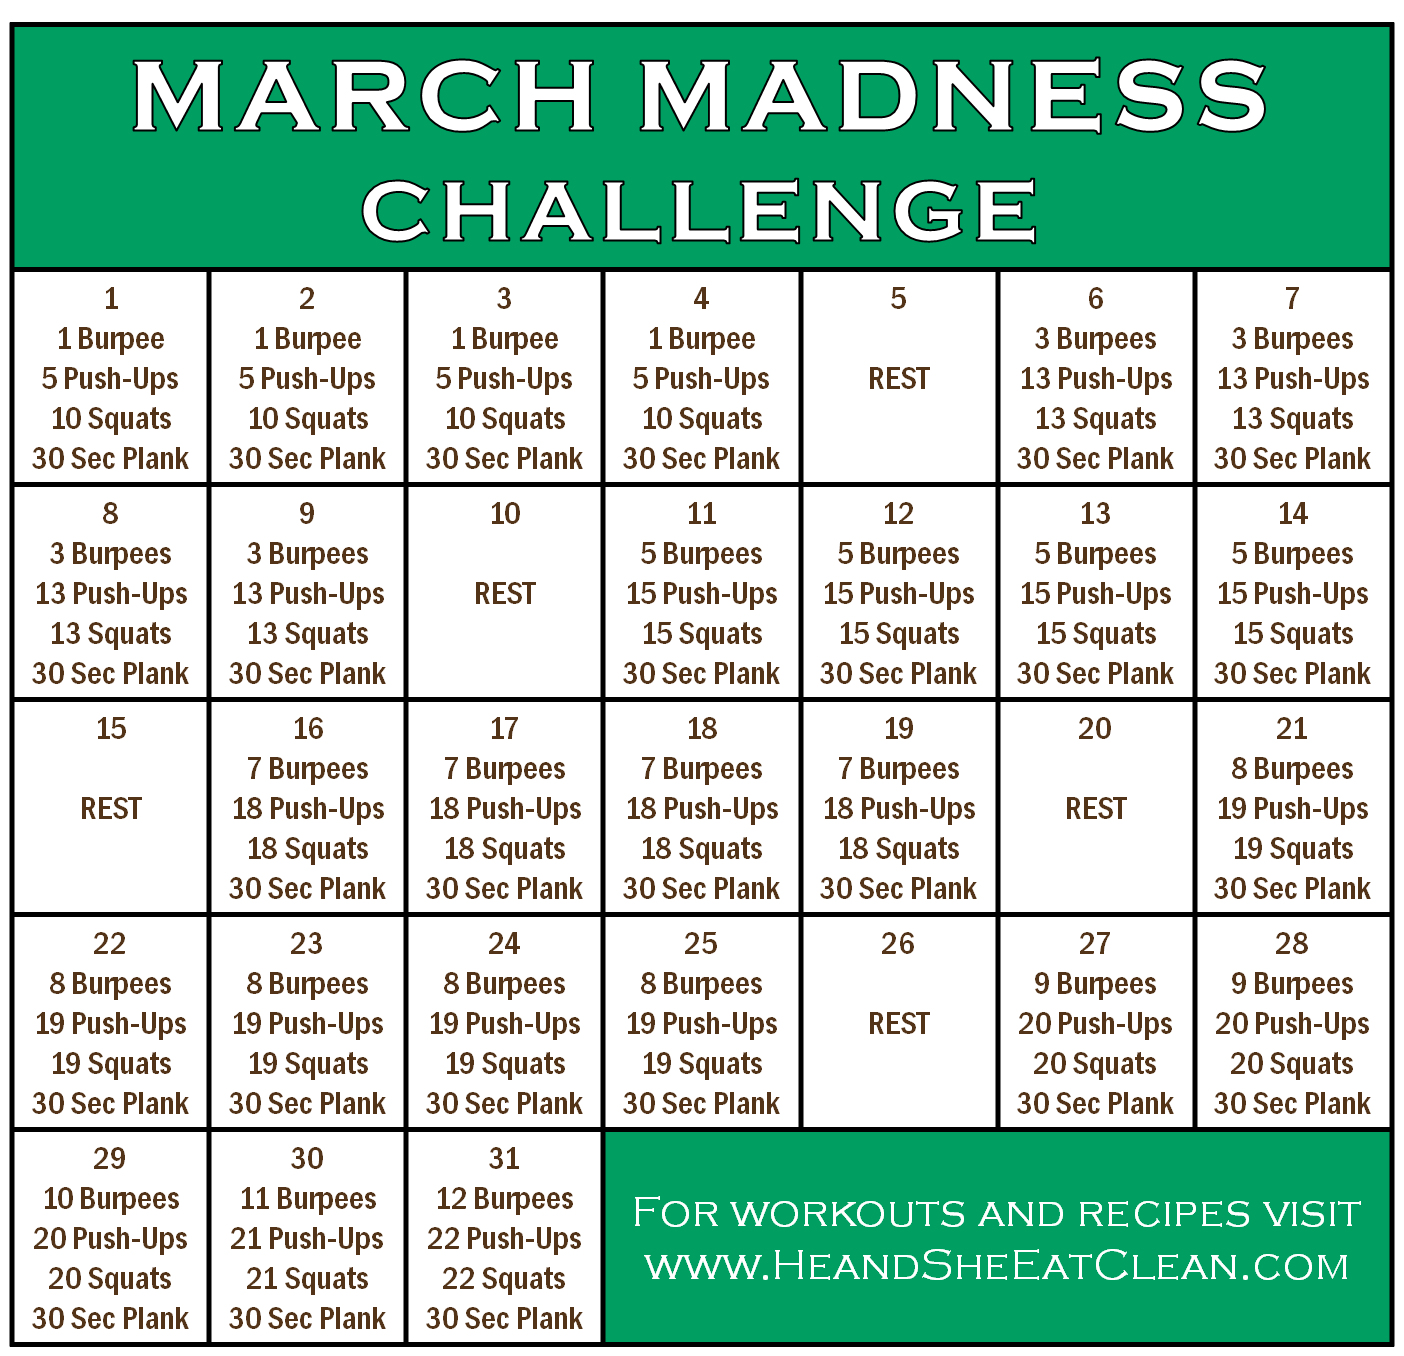 March Madness Fitness Challenge March Madness Fitness Challenge Workout Challenge Full Body Workout Challenge